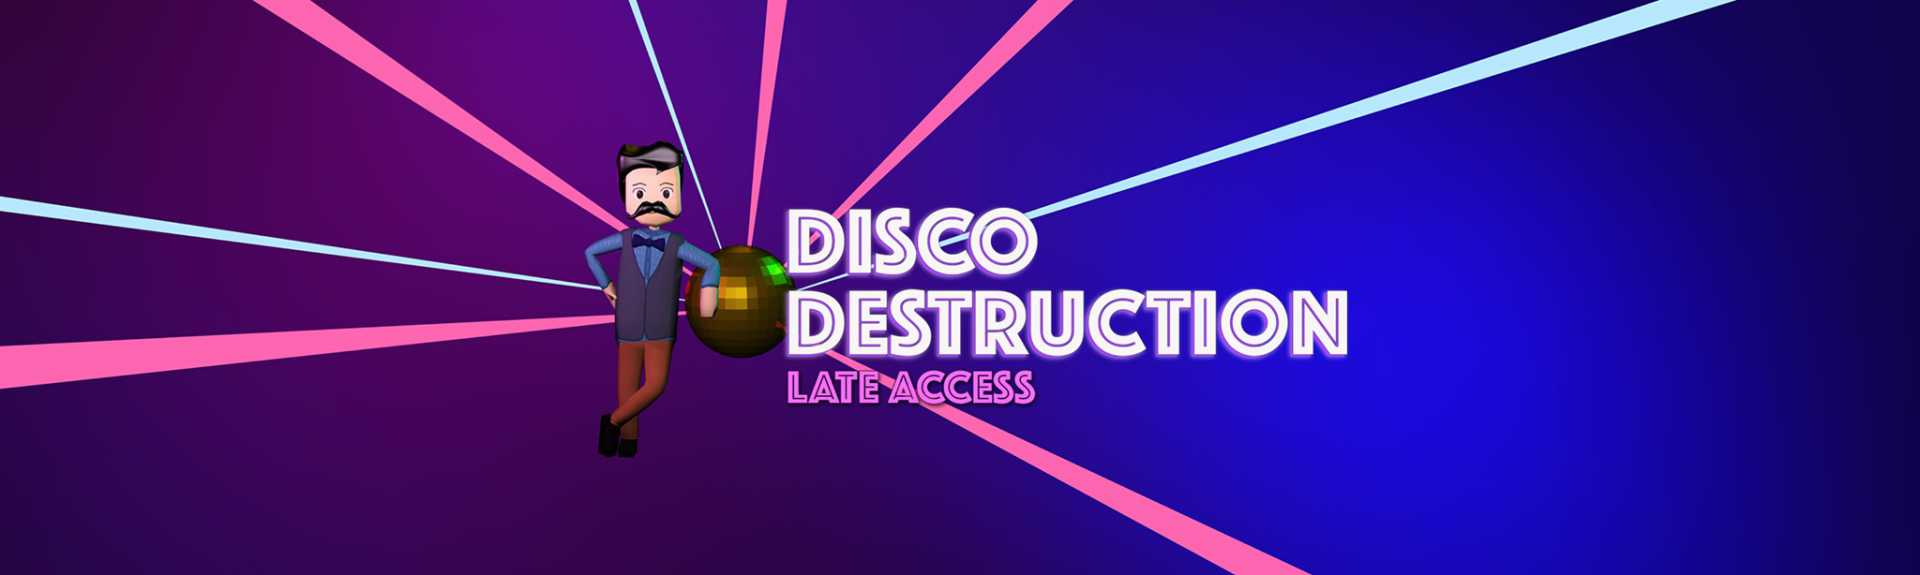 Disco Destruction: Late Access